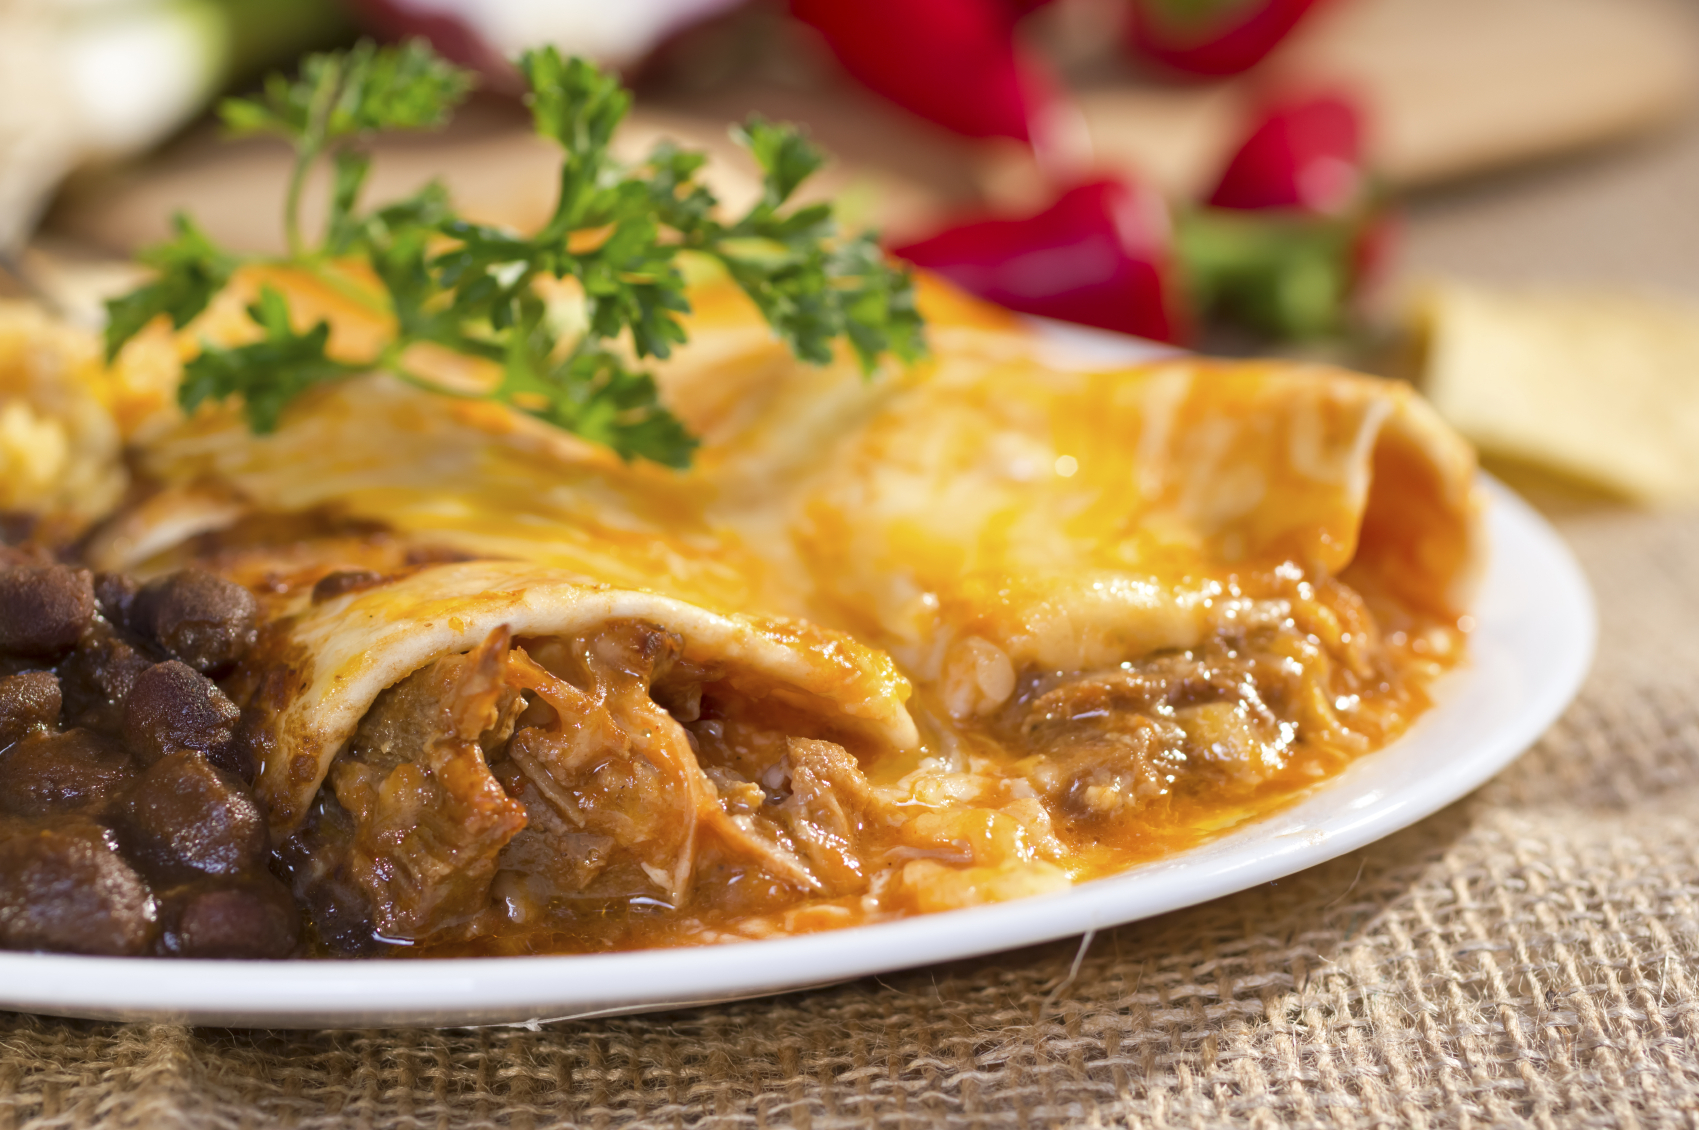 country grocer deli enchiladas reheat instructions